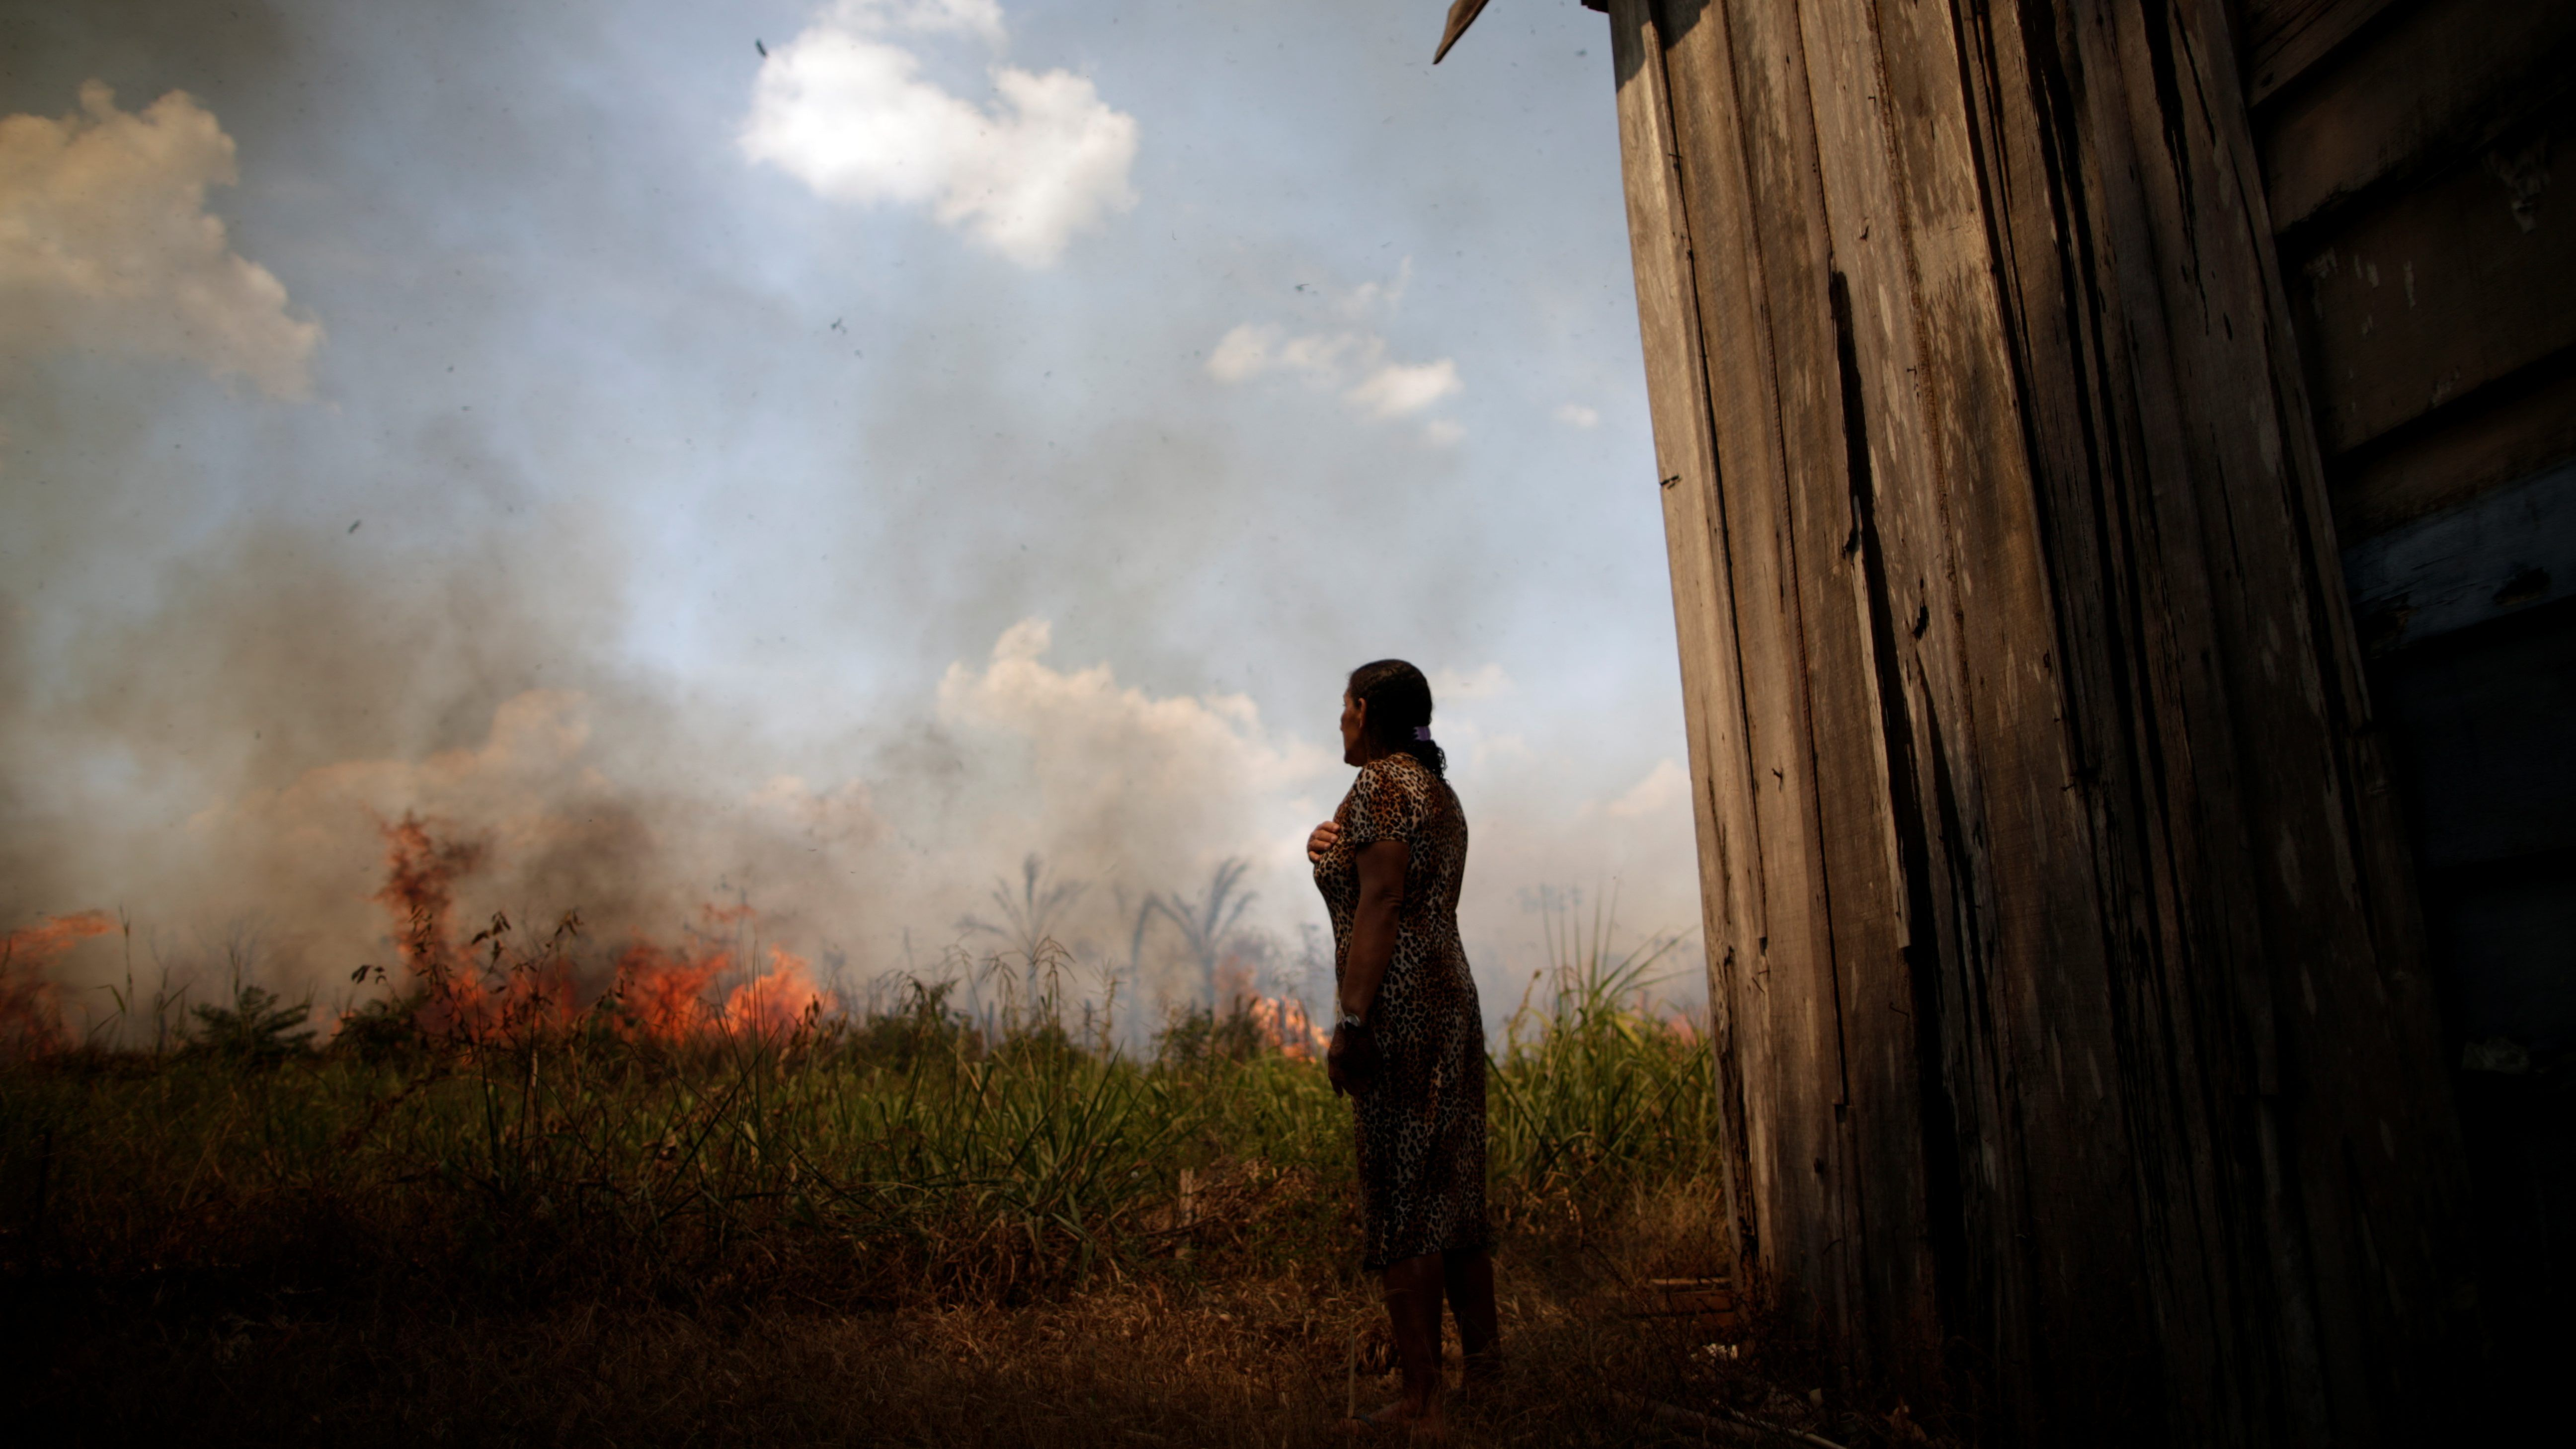 Brazil is holding the climate hostage for $10 billion annually